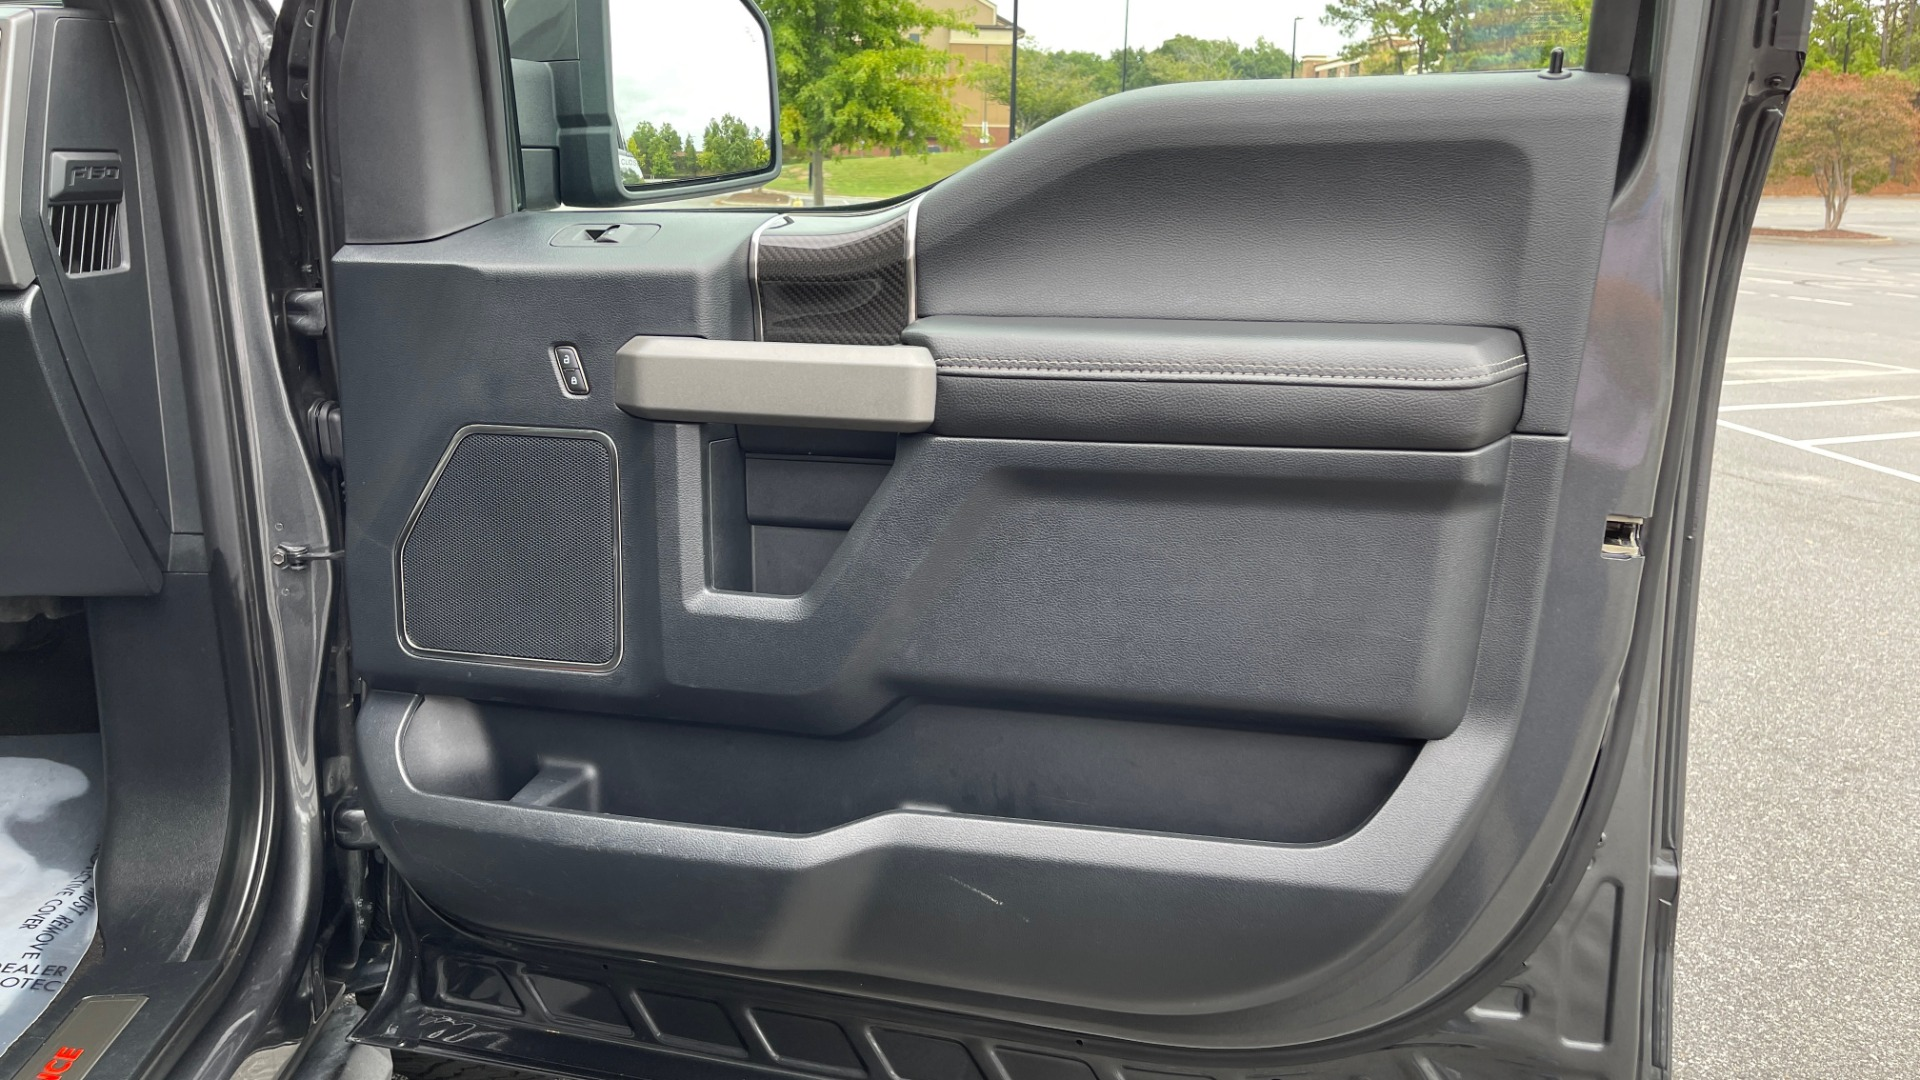 Used 2020 Ford F-150 RAPTOR 4X4 SUPERCREW / NAV / B&O SOUND / SUNROOF / REARVIEW for sale $74,900 at Formula Imports in Charlotte NC 28227 68